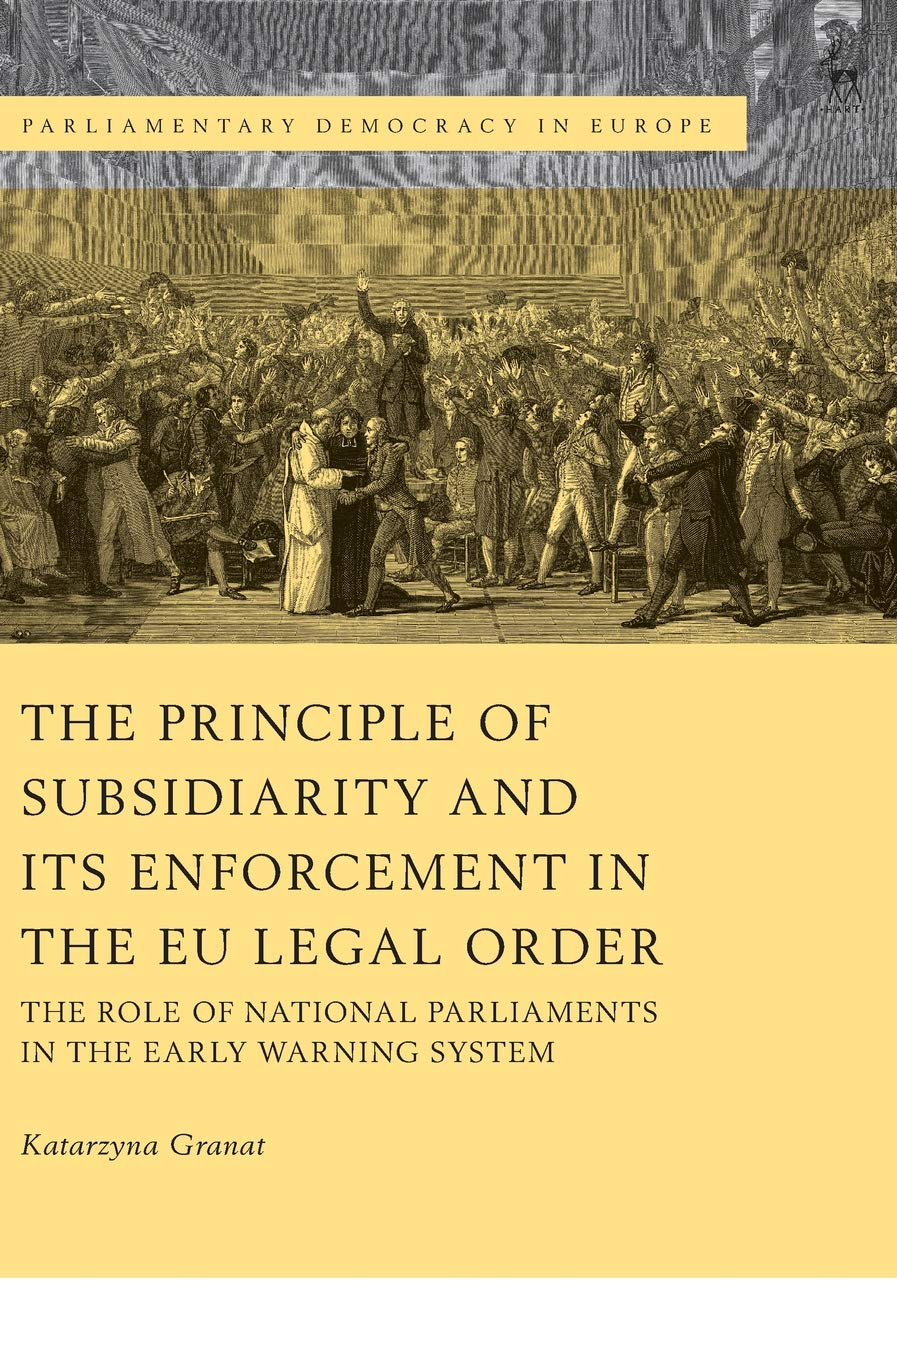 The Principle Of Subsidiarity And Its Enforcement In The EU Legal Order  The Role Of National Parliaments In The Early Warning System  Parliamentary Democracy In Europe